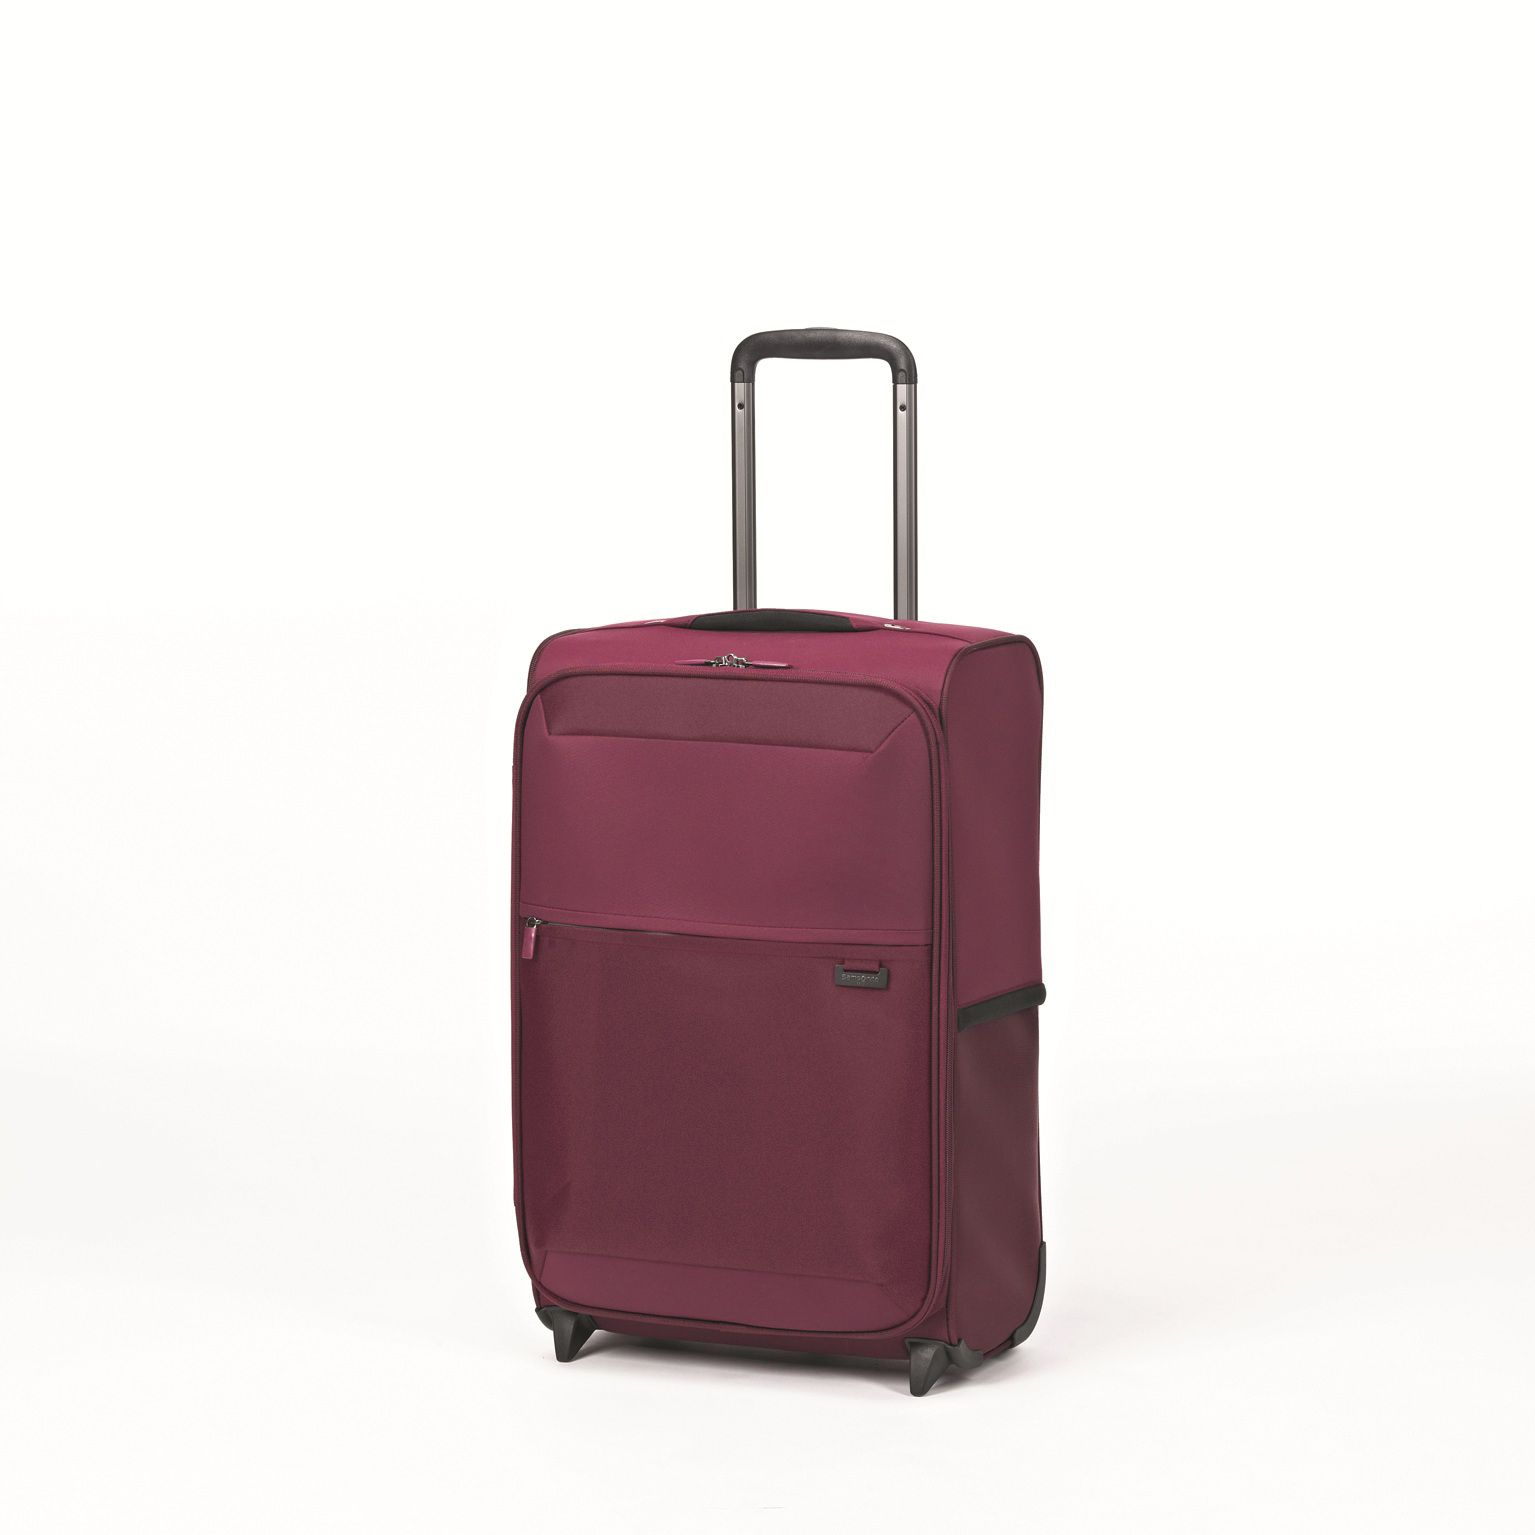 Short-Lite plum 2 wheel 55cm upright